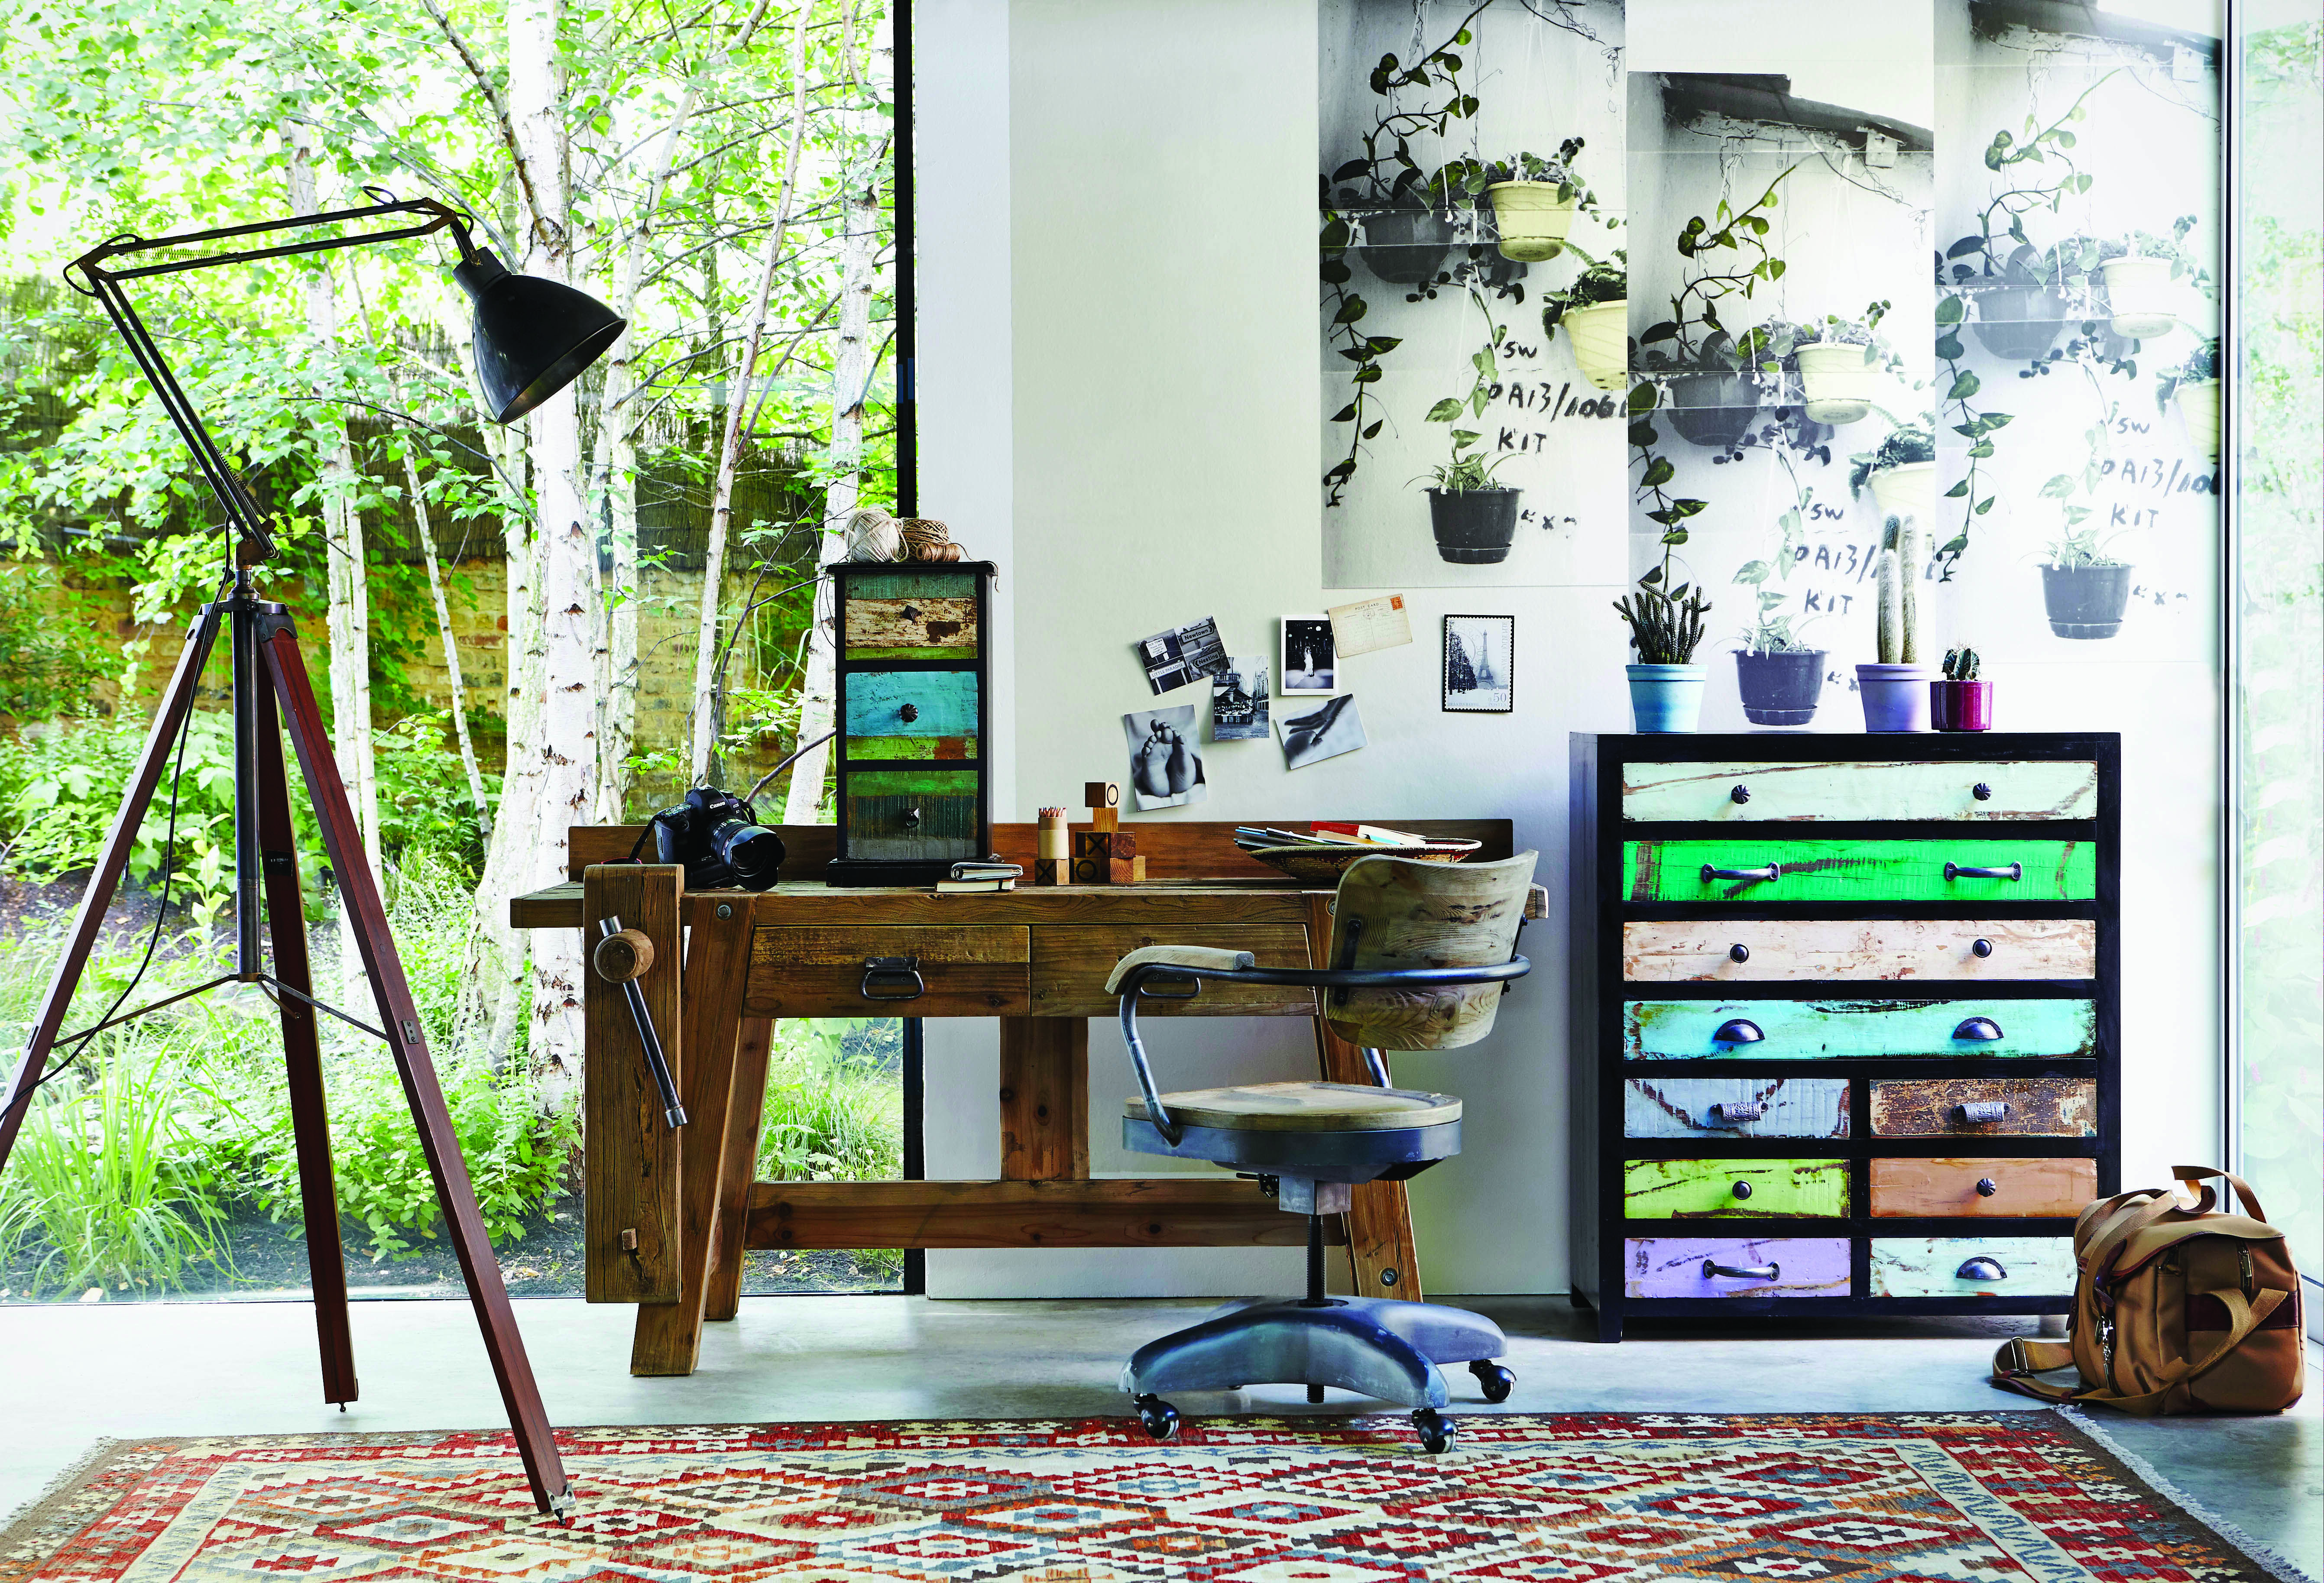 We ♥ this rustic work space look. | Home Design: Office | Pinterest